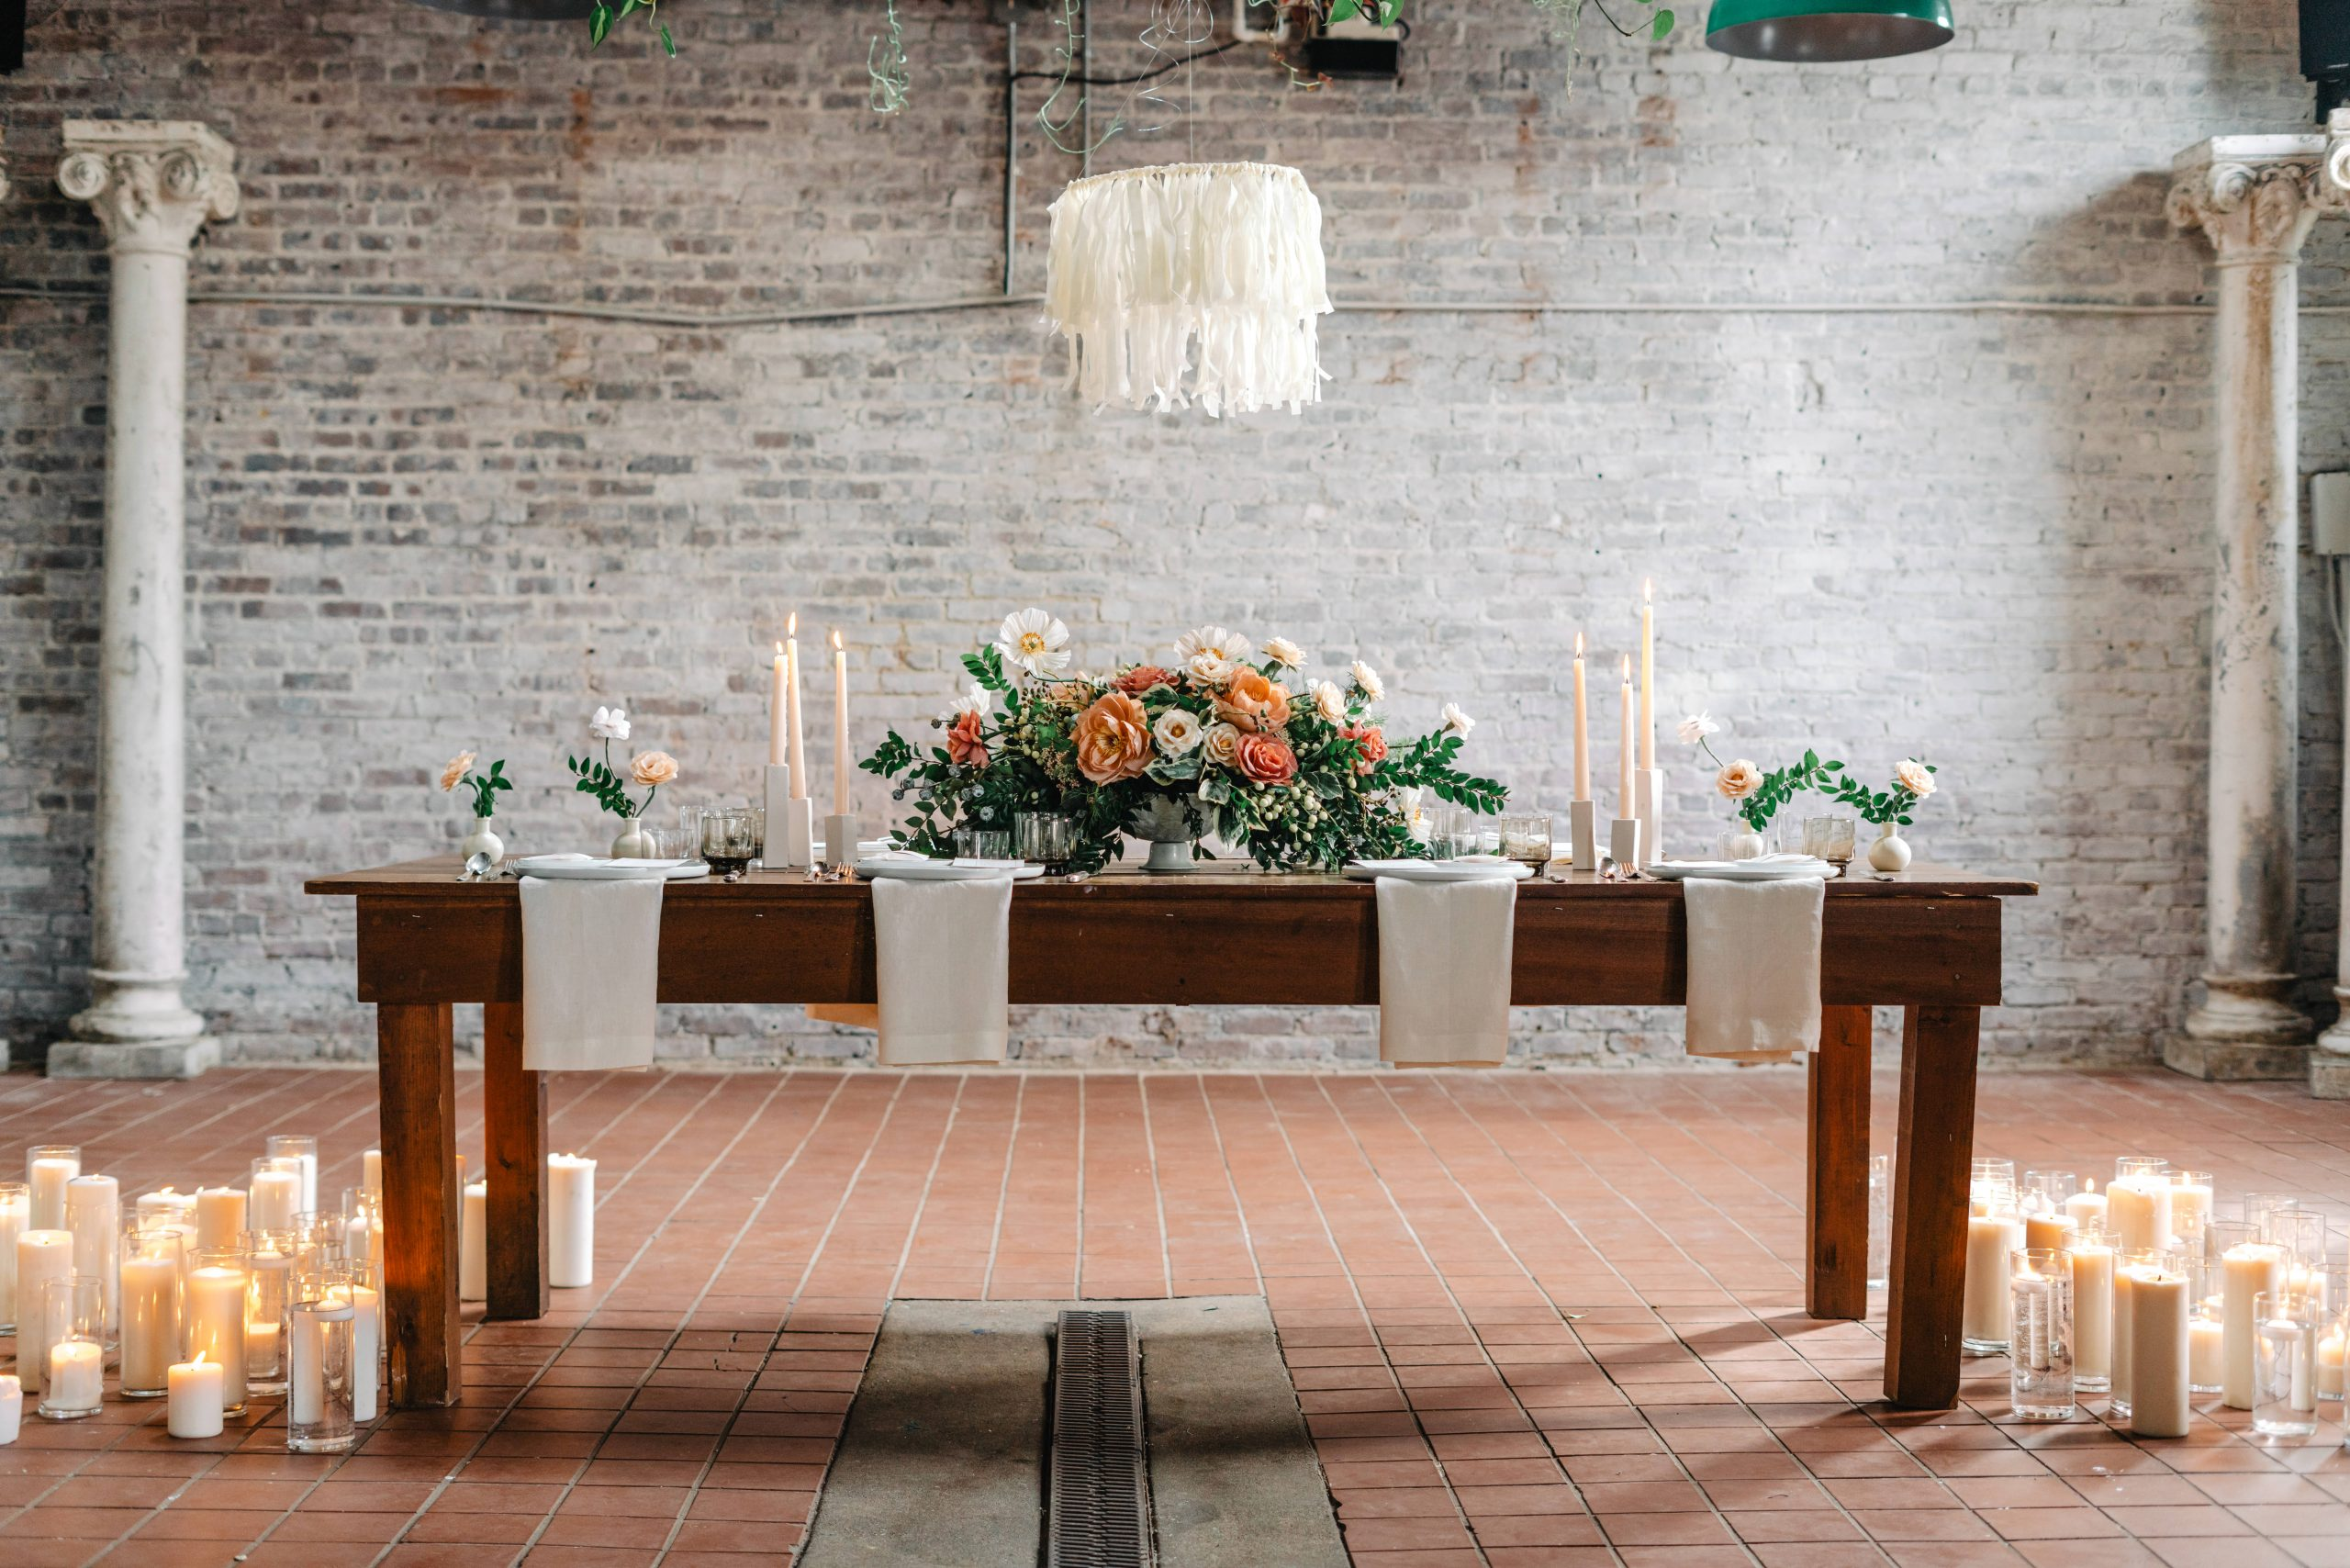 rustic table with flowers and candles in a warehouse